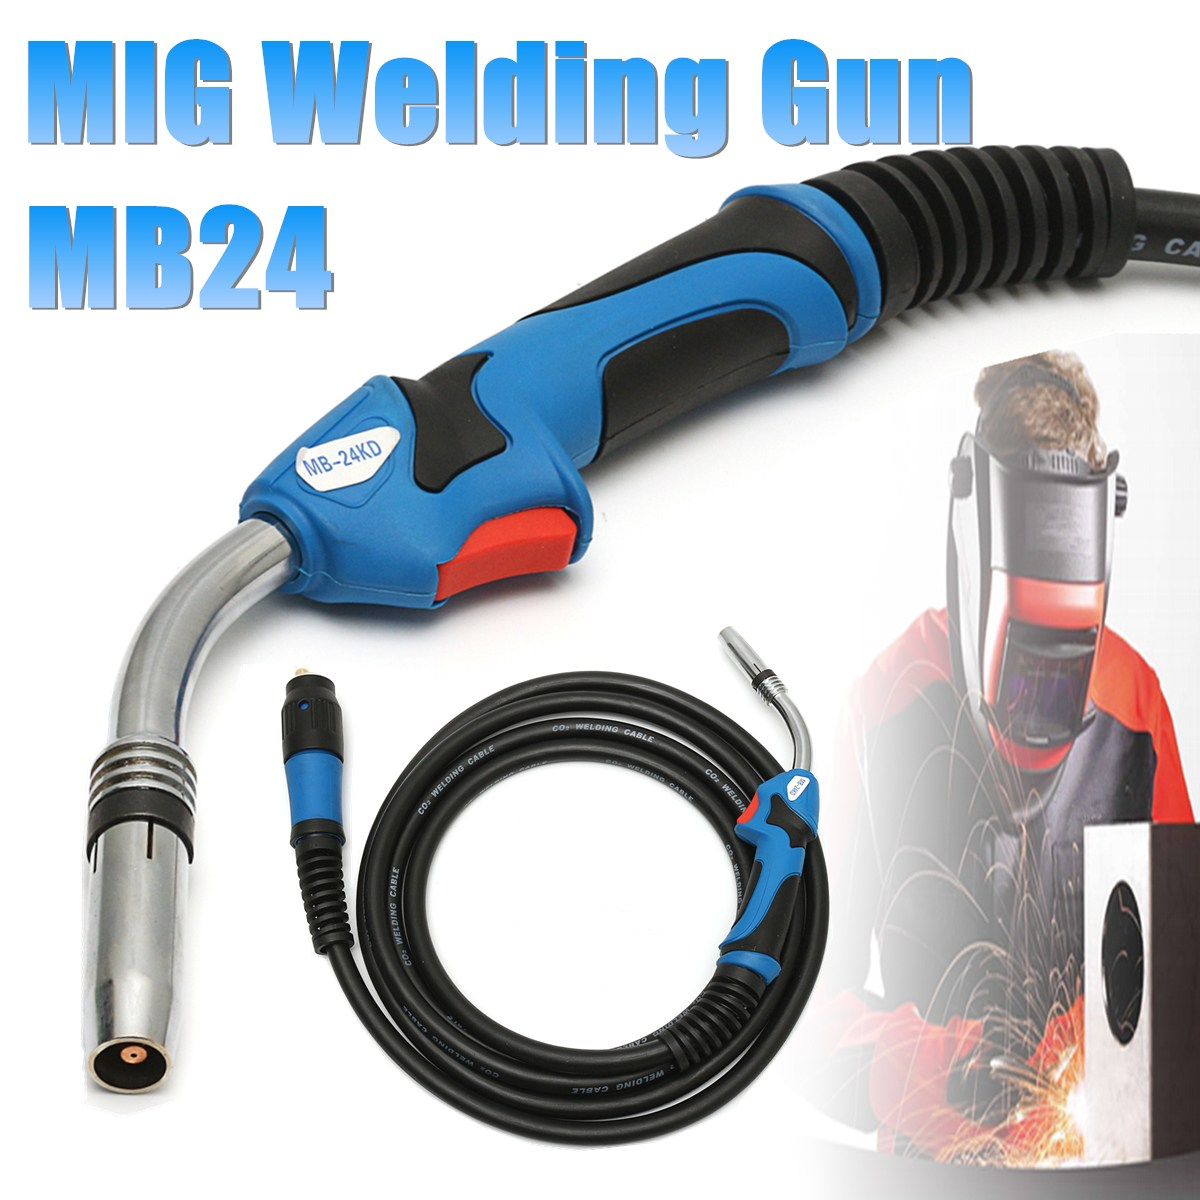 MB24 MIG Welding Gun-Torch  with 5 Meter Length Lead Electric Welder Torch Stinger Parts professional welding wire feeder 24v wire feed assembly 0 8 1 0mm 03 04 detault wire feeder mig mag welding machine ssj 18